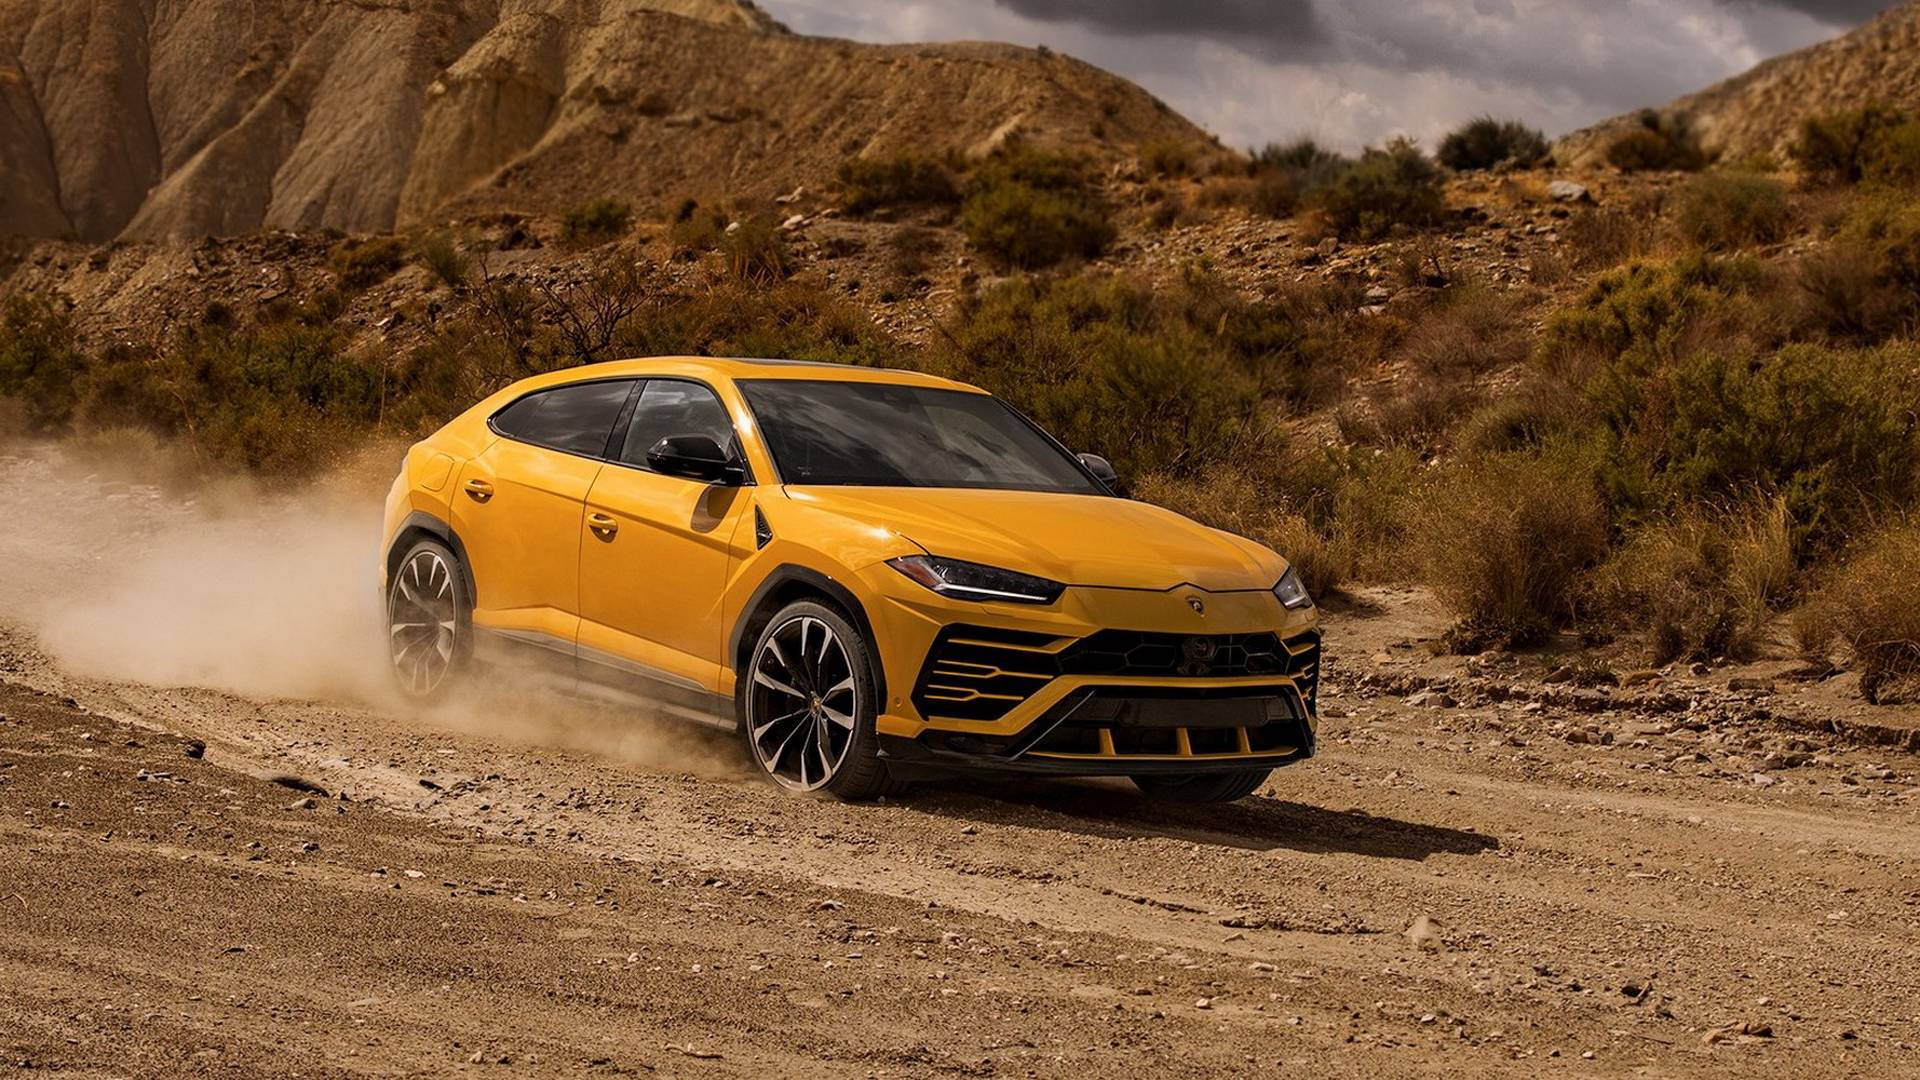 Lamborghini Urus Off Road Washing Packages Detailed On Video